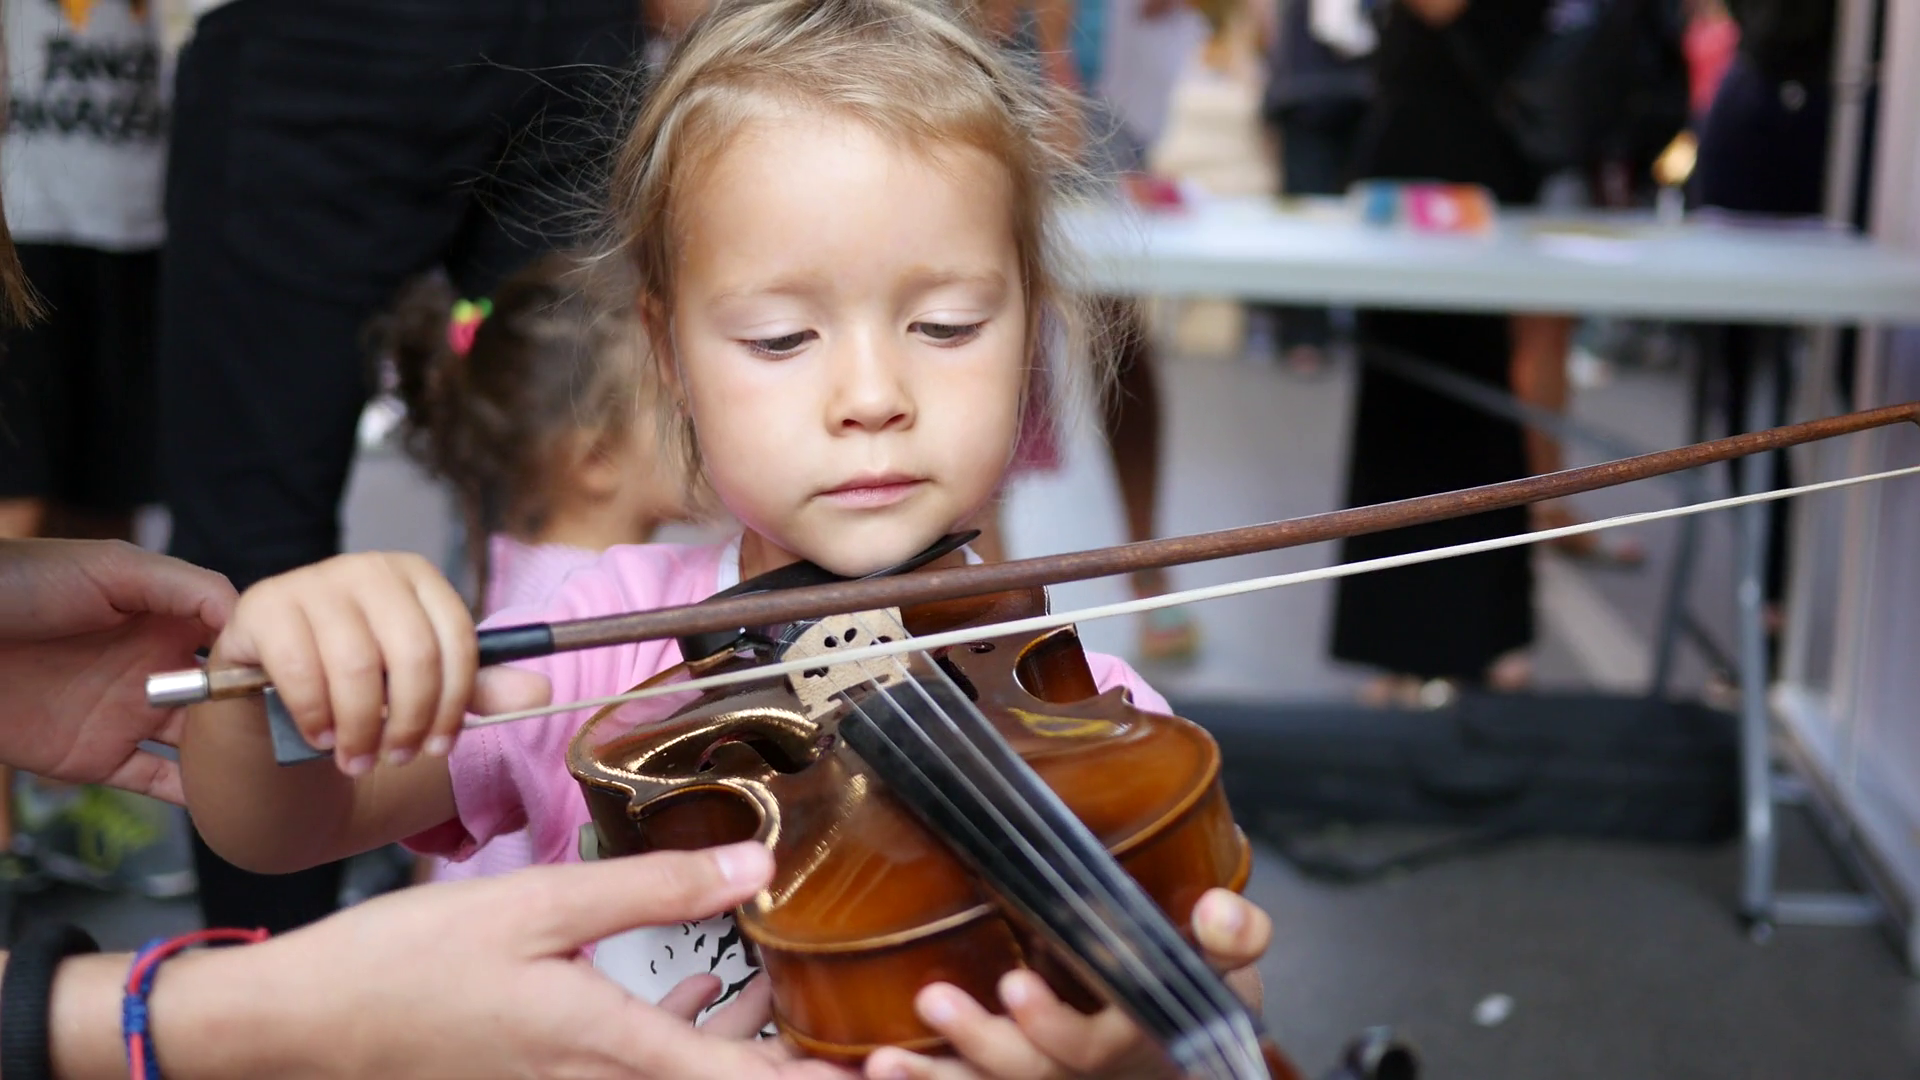 Violin Demonstration - See, hear, and experience a broad range of the violin's music while learning more about one of the world's most popular instruments.